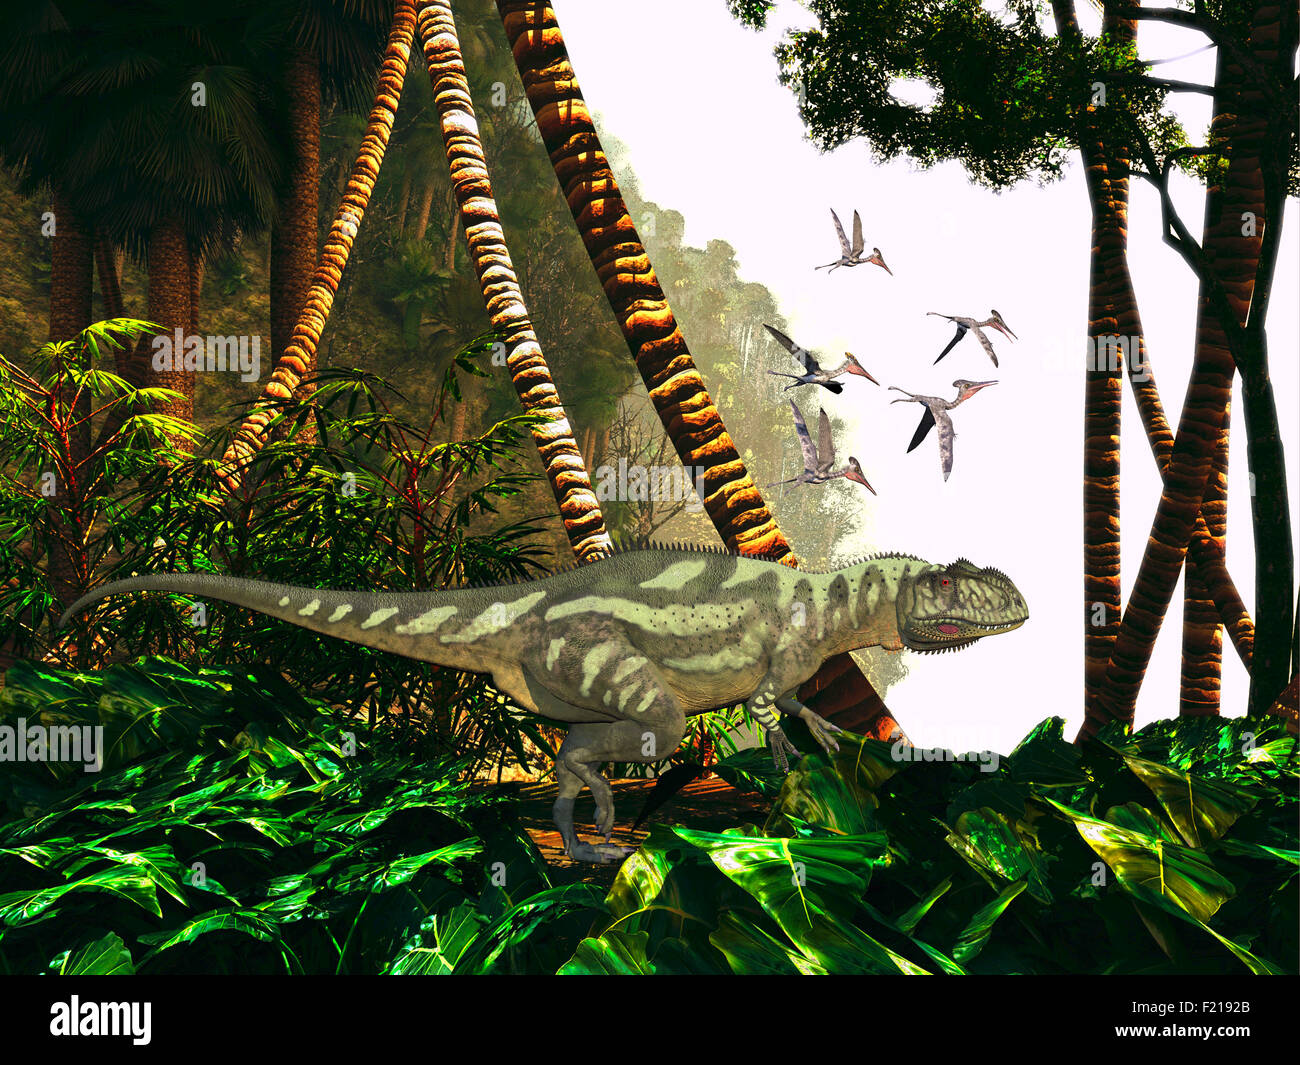 A Yangchuanosaurus hunts through heavy jungle foliage for prey as a flock of Pterodactylus reptiles keep close watch - Stock Image